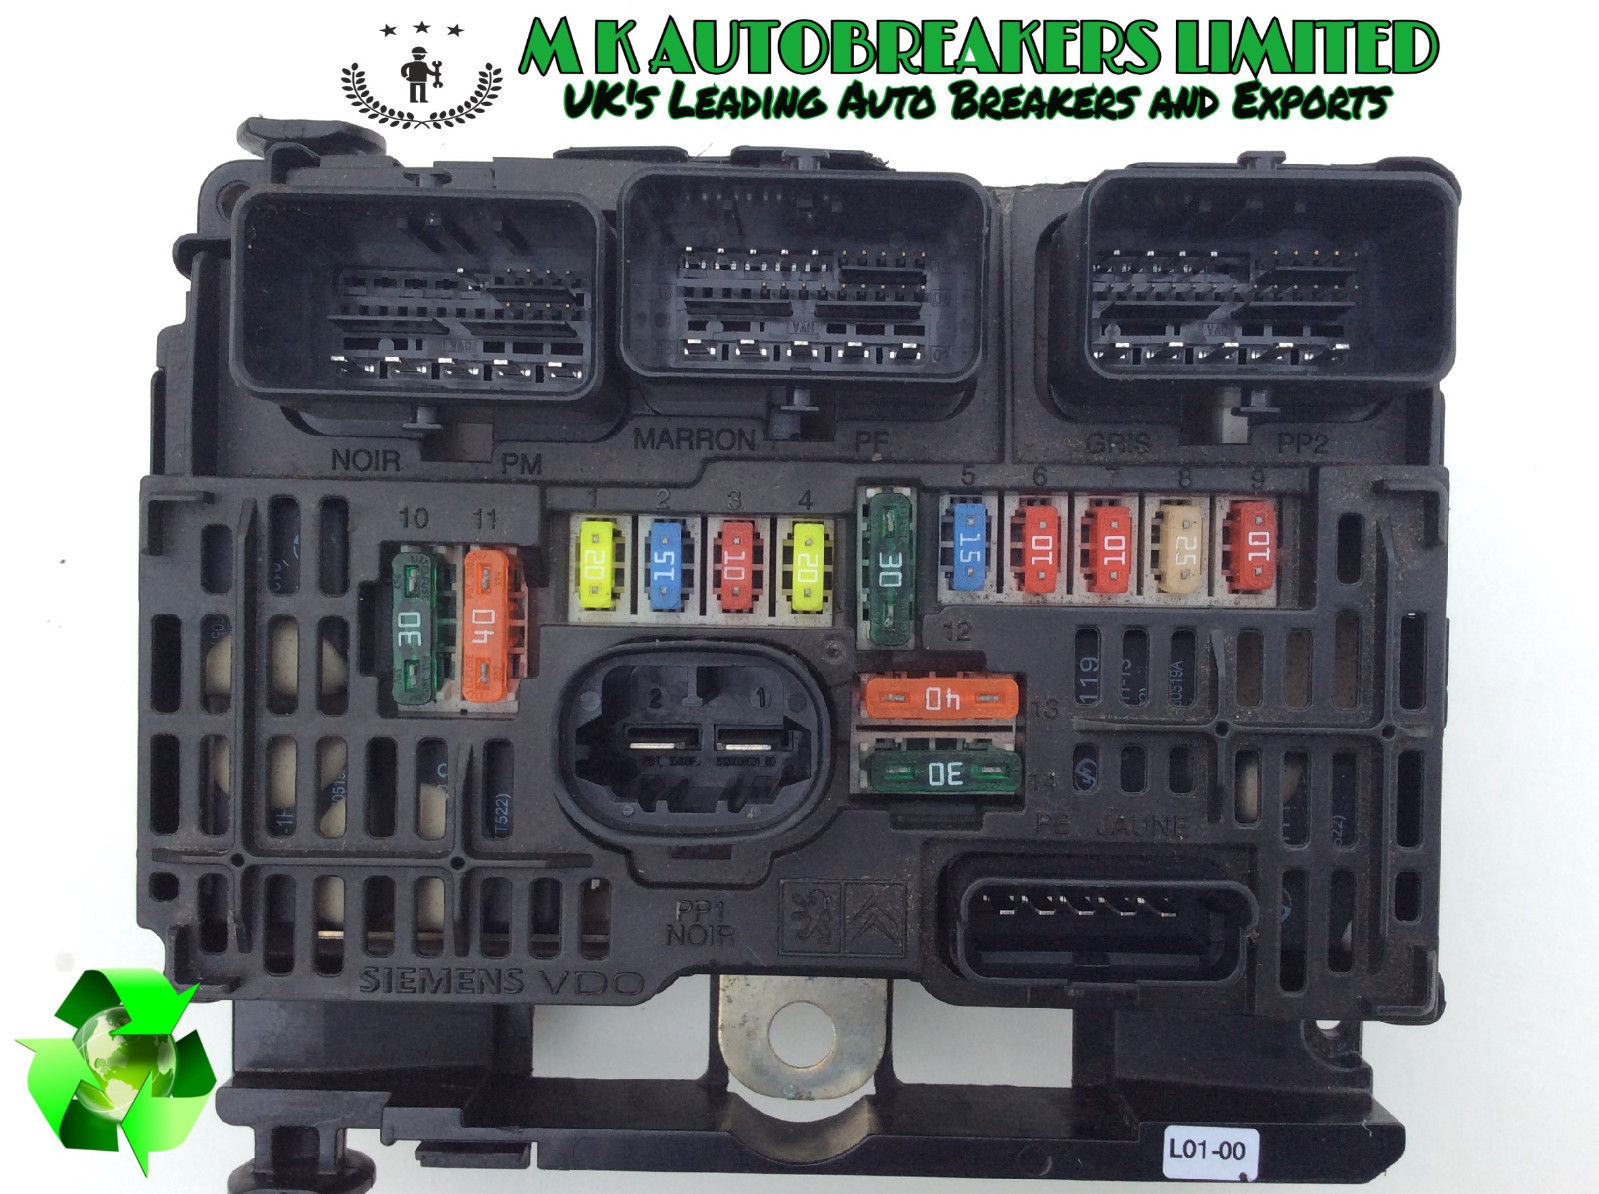 Peugeot 1007 From 05 09 Engine Bay Fuse Box Bsm Breaking For Spare Part Parts Mk Autobreakers Ltd